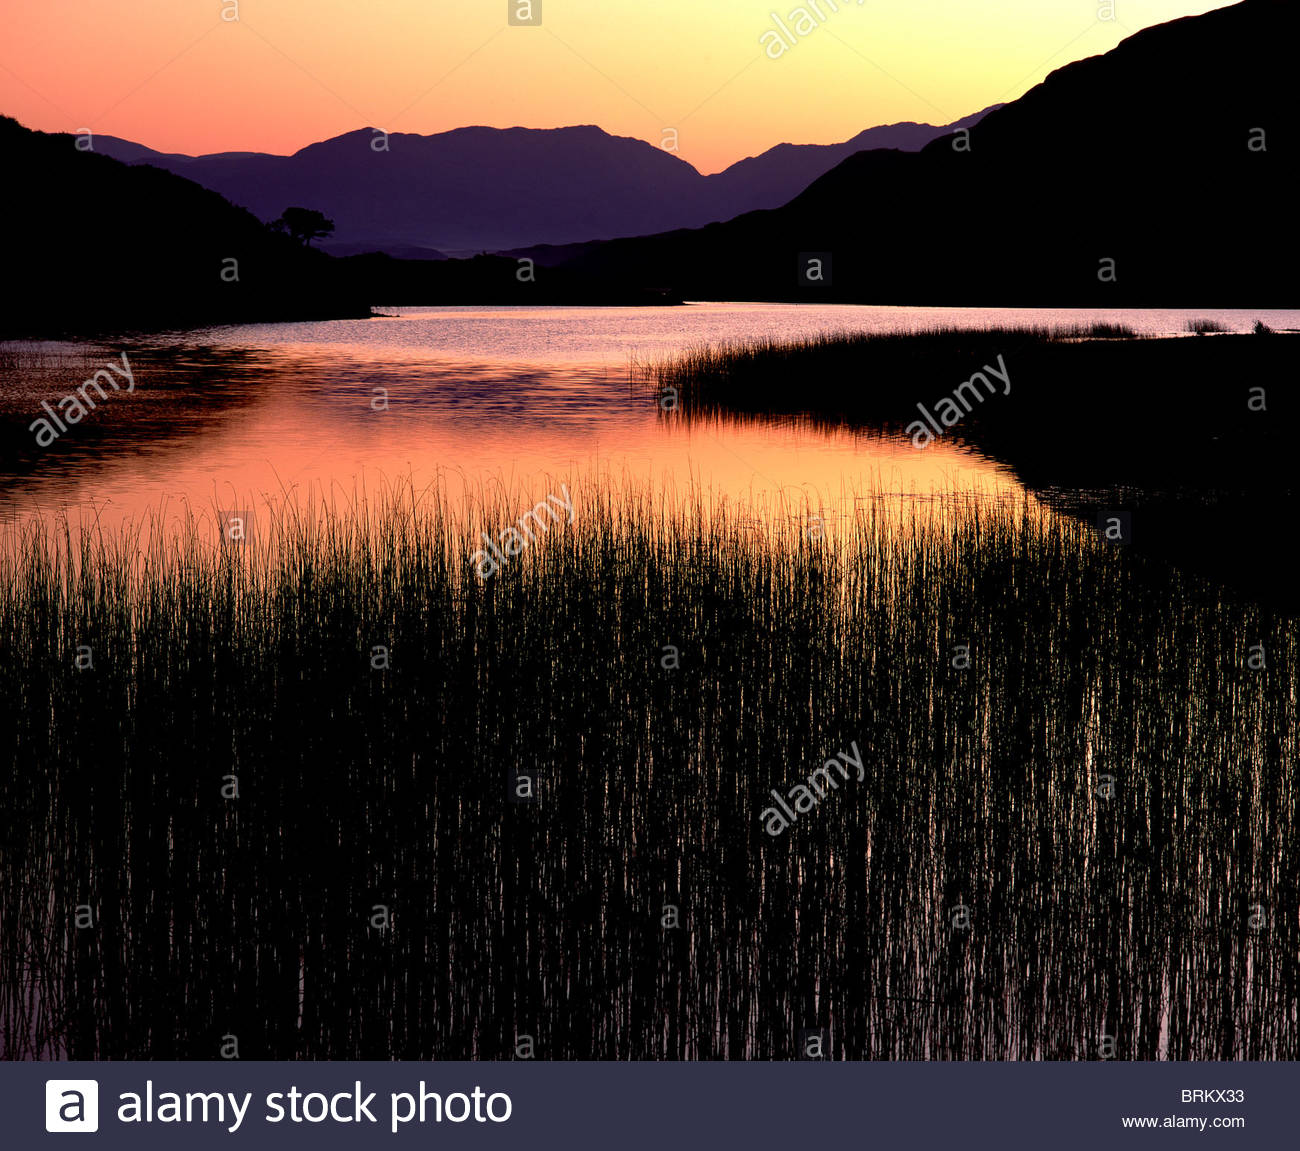 Sunsetting on a lake with reeds in the foreground. - Stock Image